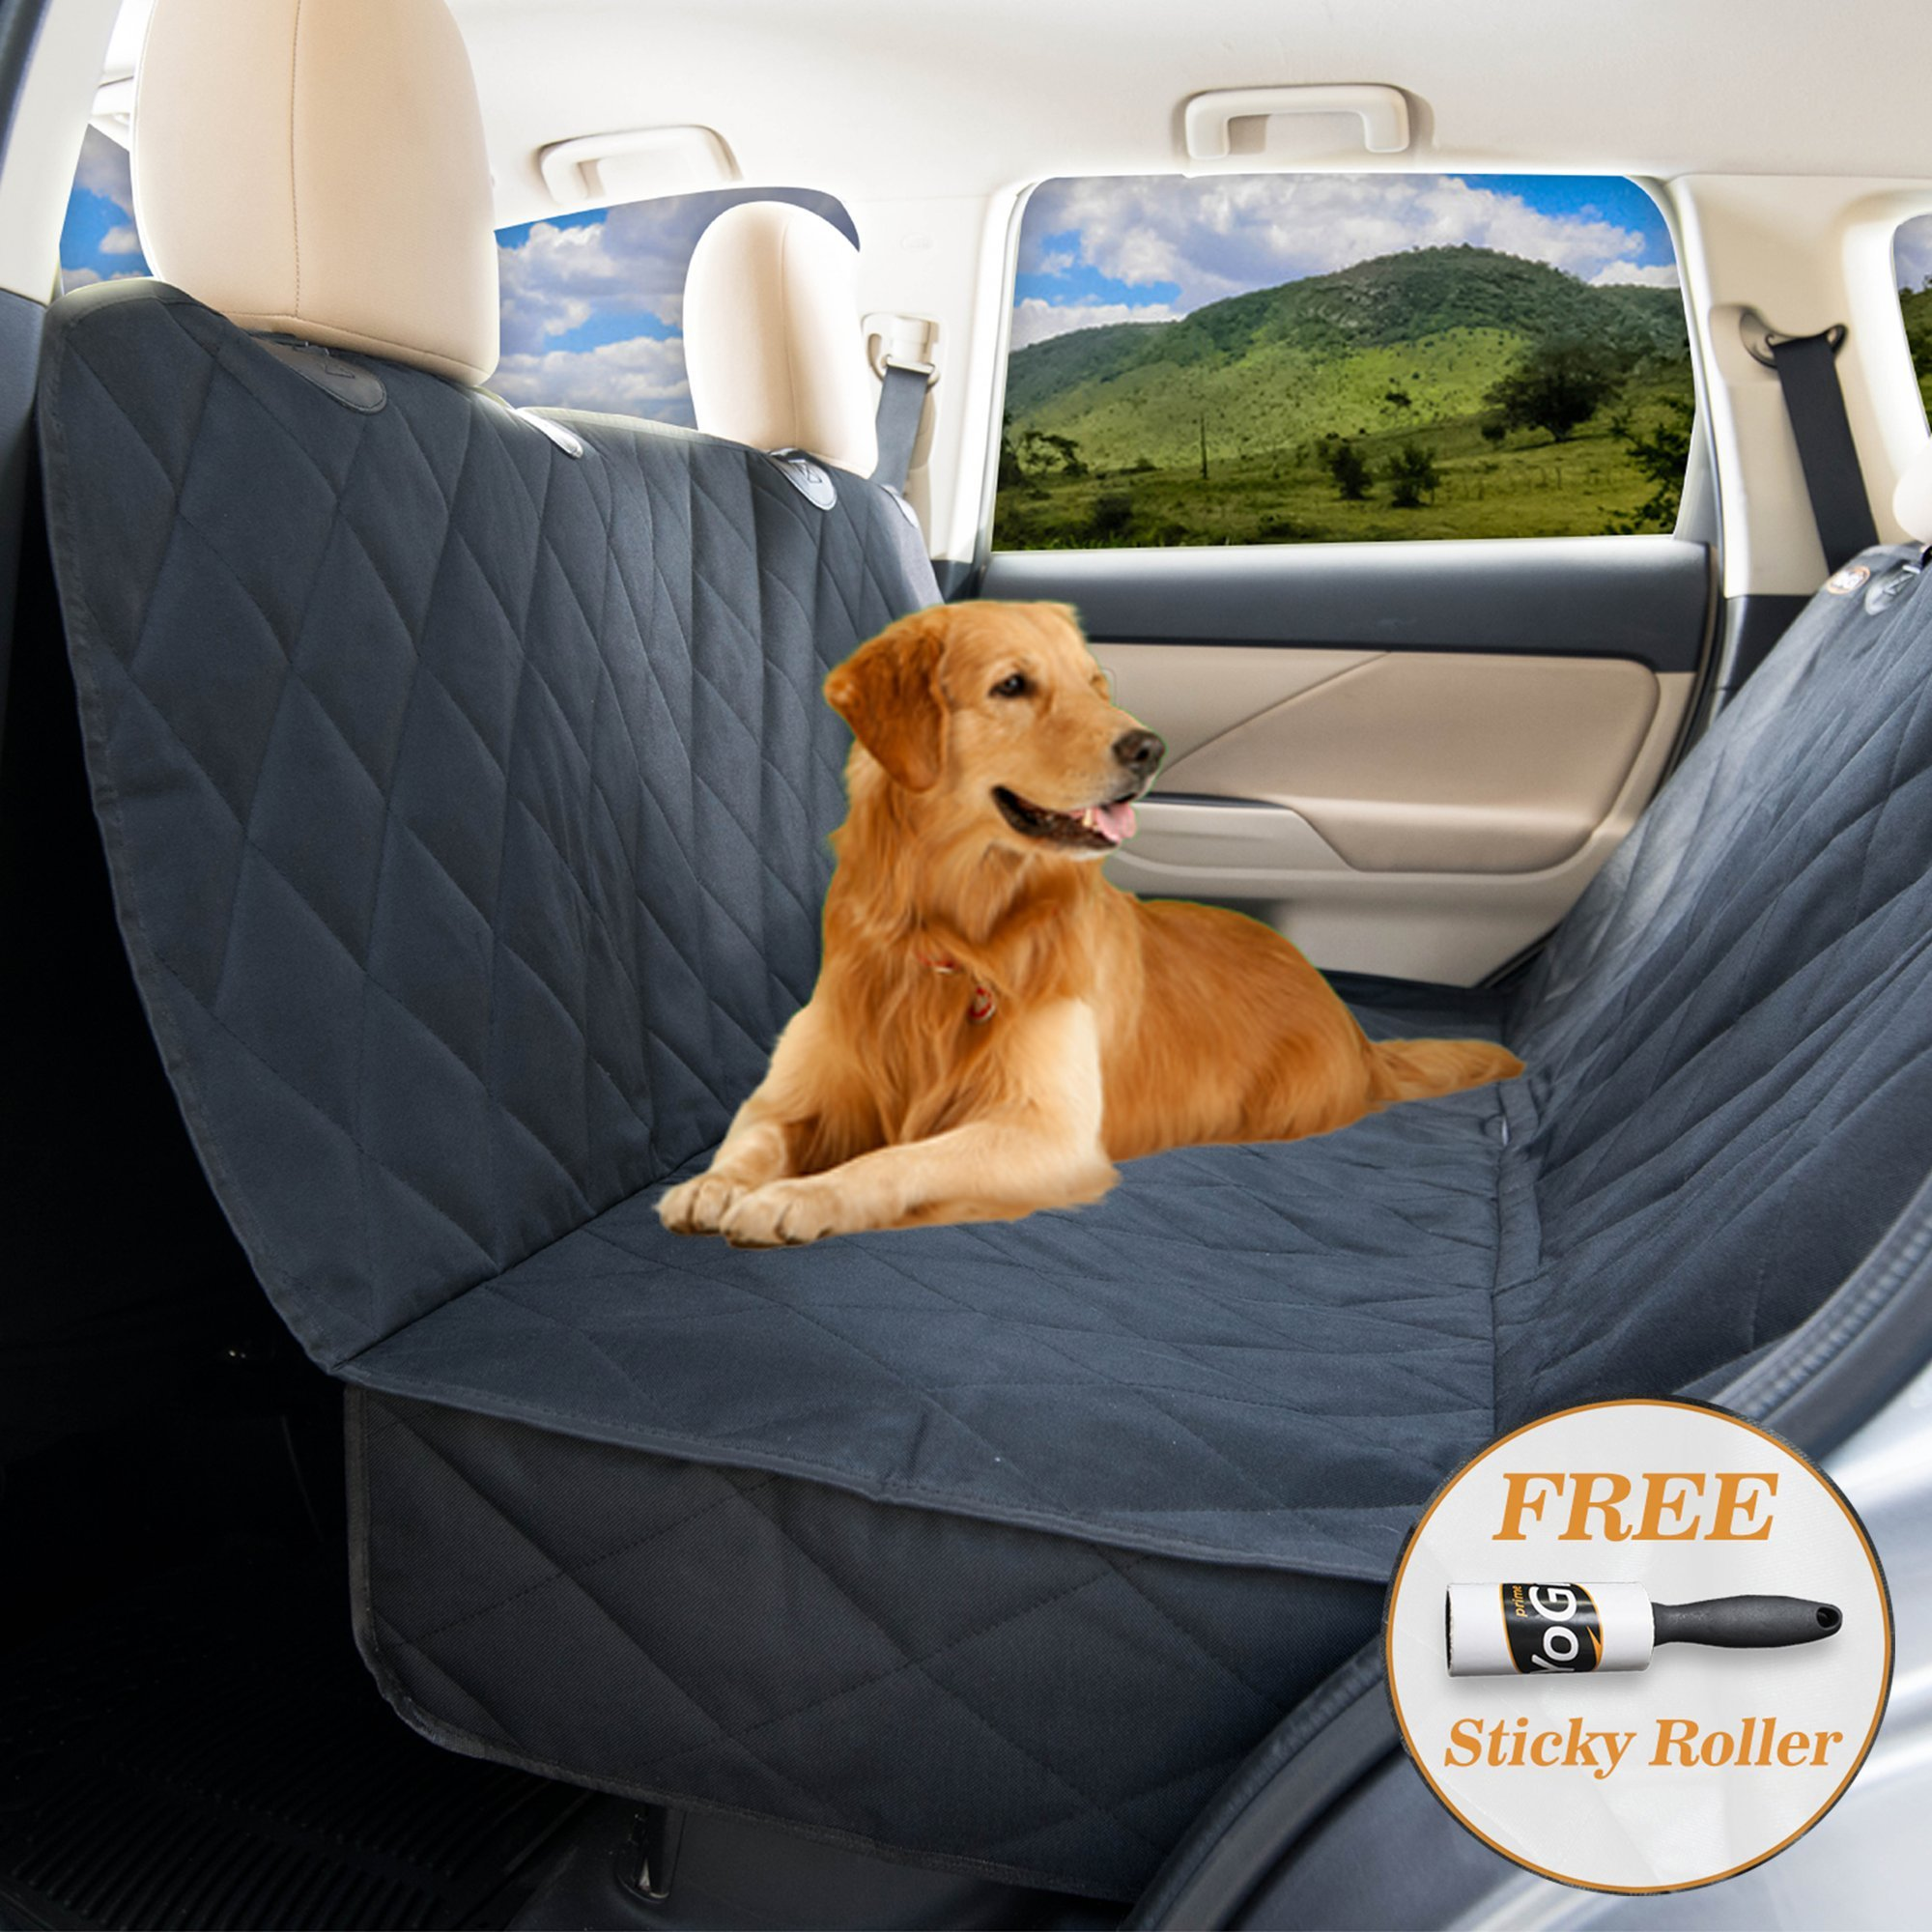 Dog seat Cover for Back seat - Hammock Dog car seat Covers for Large Dogs, Waterproof, protrct Your Vehicle only with Durable Back seat Cover for Dogs - Universal fit by YoGi Prime